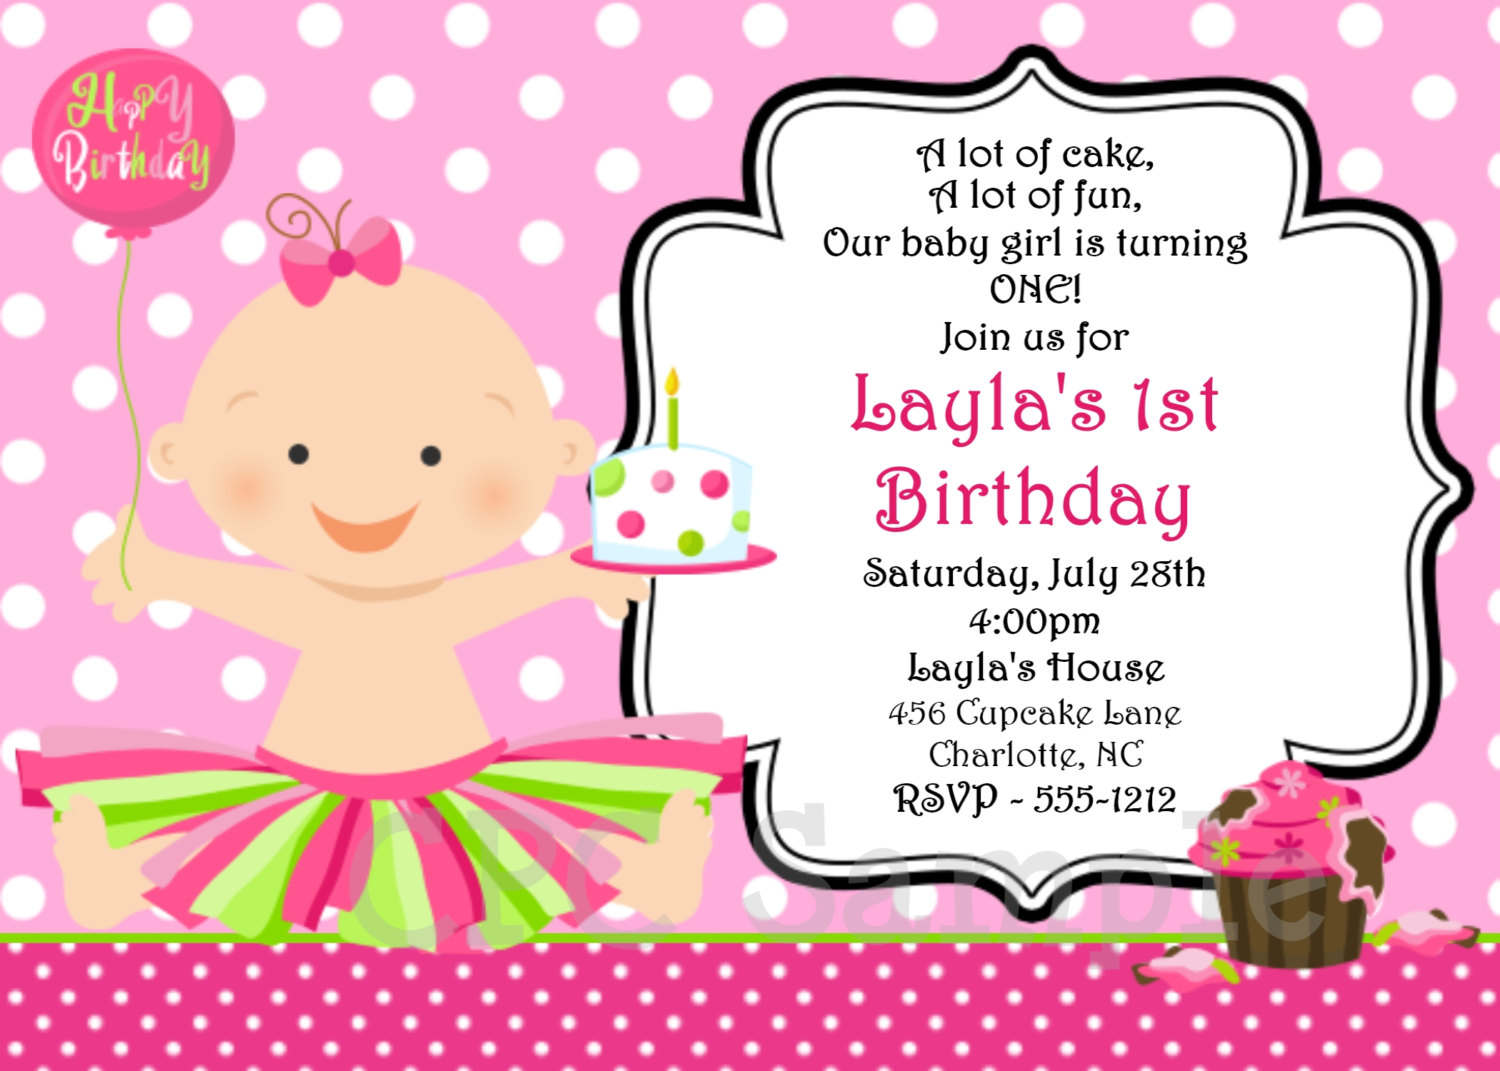 create birthday invitation card with photo ; Make-Birthday-Party-Invitations-Online-For-Free-To-Print-Create-Birthday-Invitations-Free-Download-Images-For-Inspiration-pink-polcadot